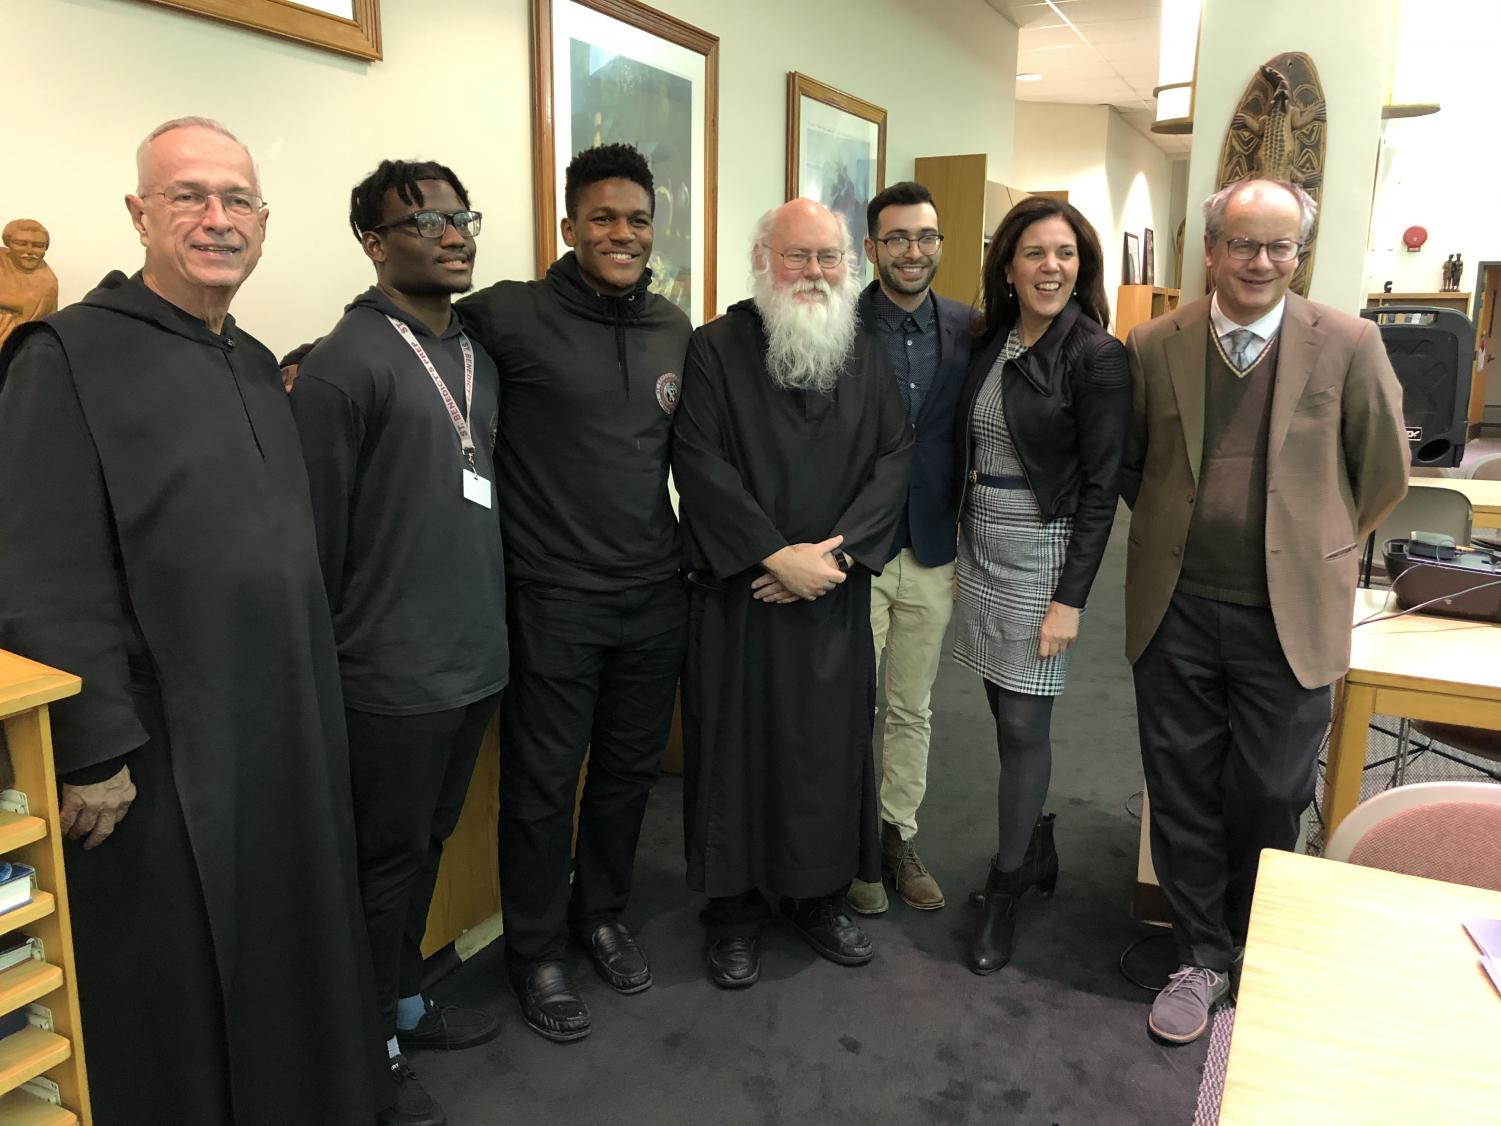 (Pictured from left to right) Fr. Albert Holtz, Anthony Agustin SY, Richard Ohia SY, Fr. Augustine Curley, Mr. Adubato, Dr. Margarita Mooney, and Mr. Carlo Lancelotti